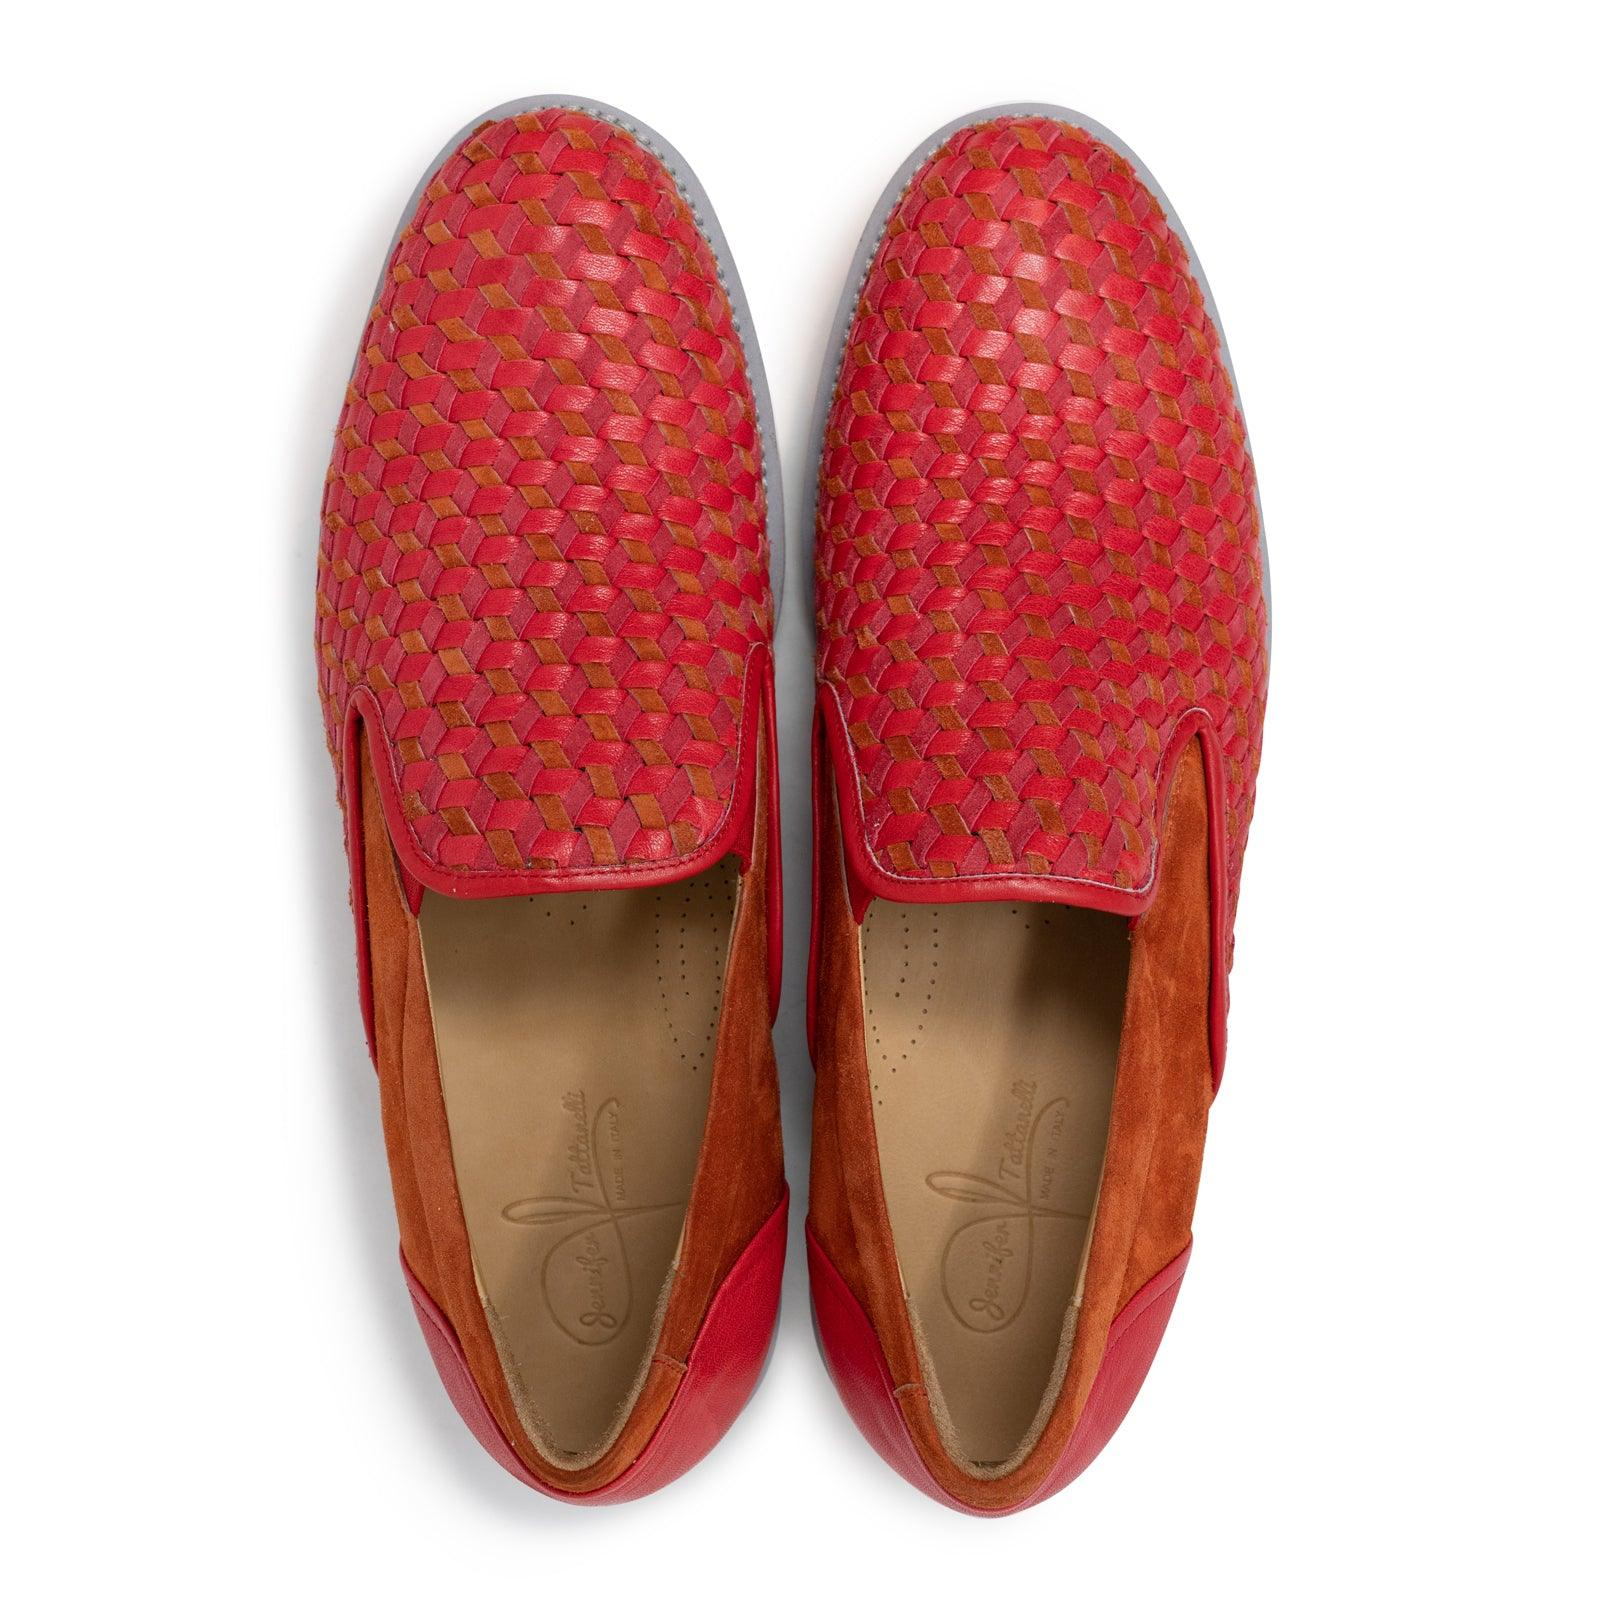 Men Slip On Leather Shoes in Blood Red Suede